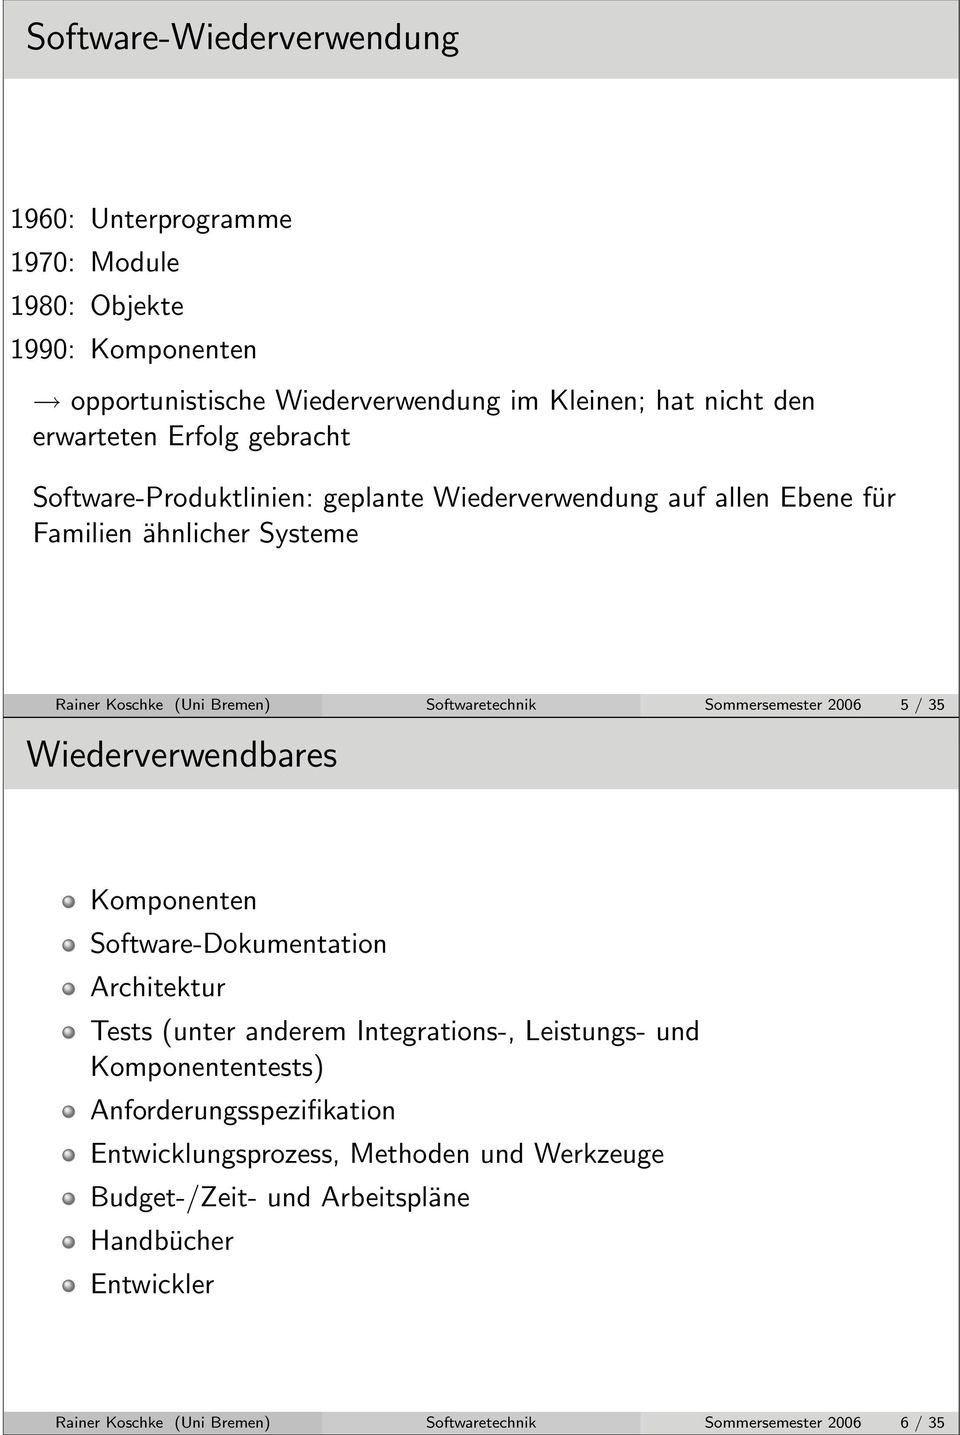 2006 5 / 35 Software-Produktlinien: Software-Wiederverwendung Wiederverwendbares Komponenten Software-Dokumentation Architektur Tests (unter anderem Integrations-, Leistungs- und